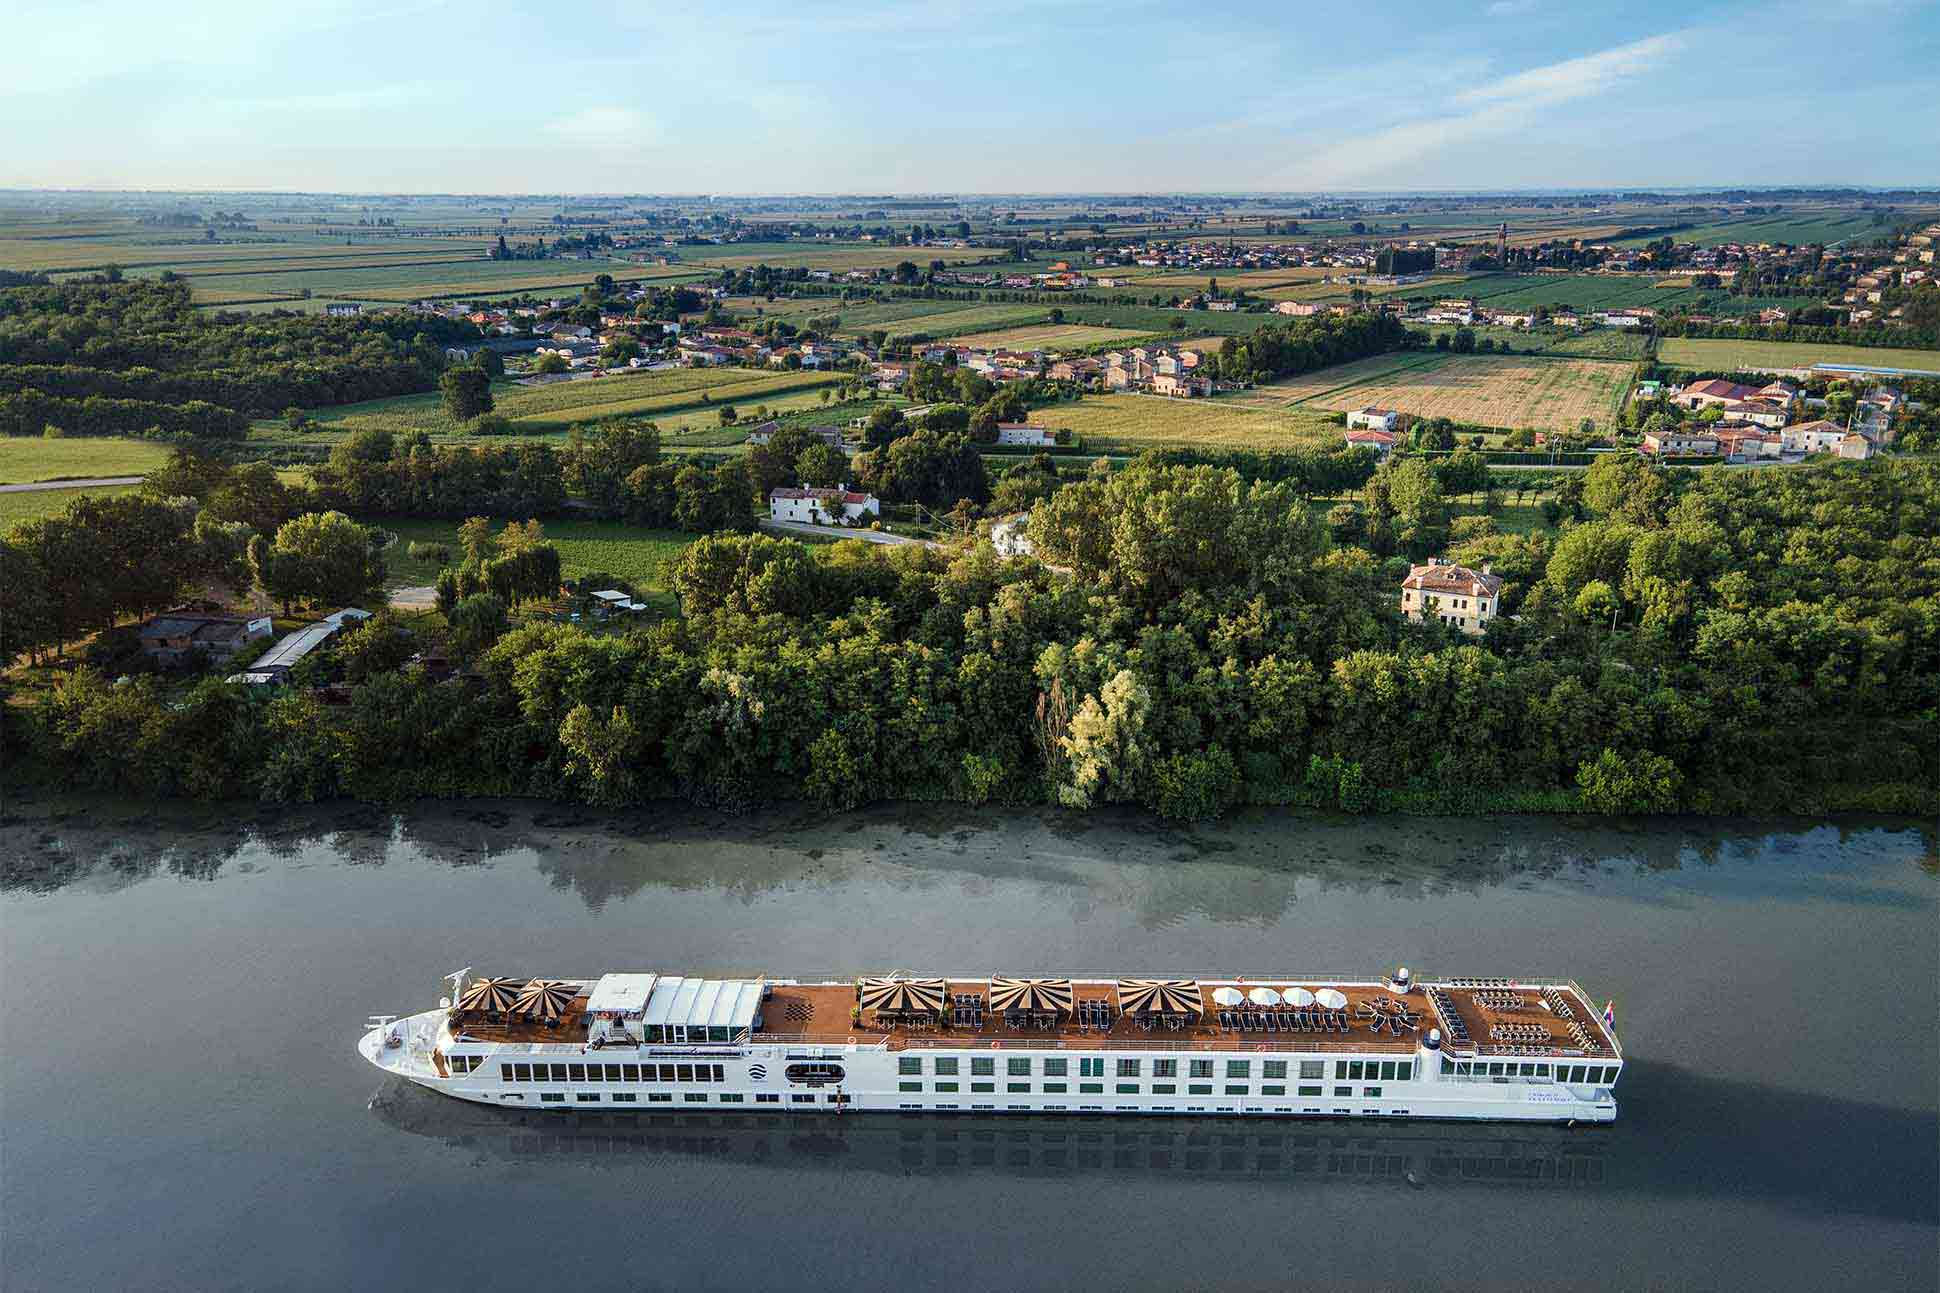 Uniworld river cruises new 'Super Ships': <br> Dreamboats